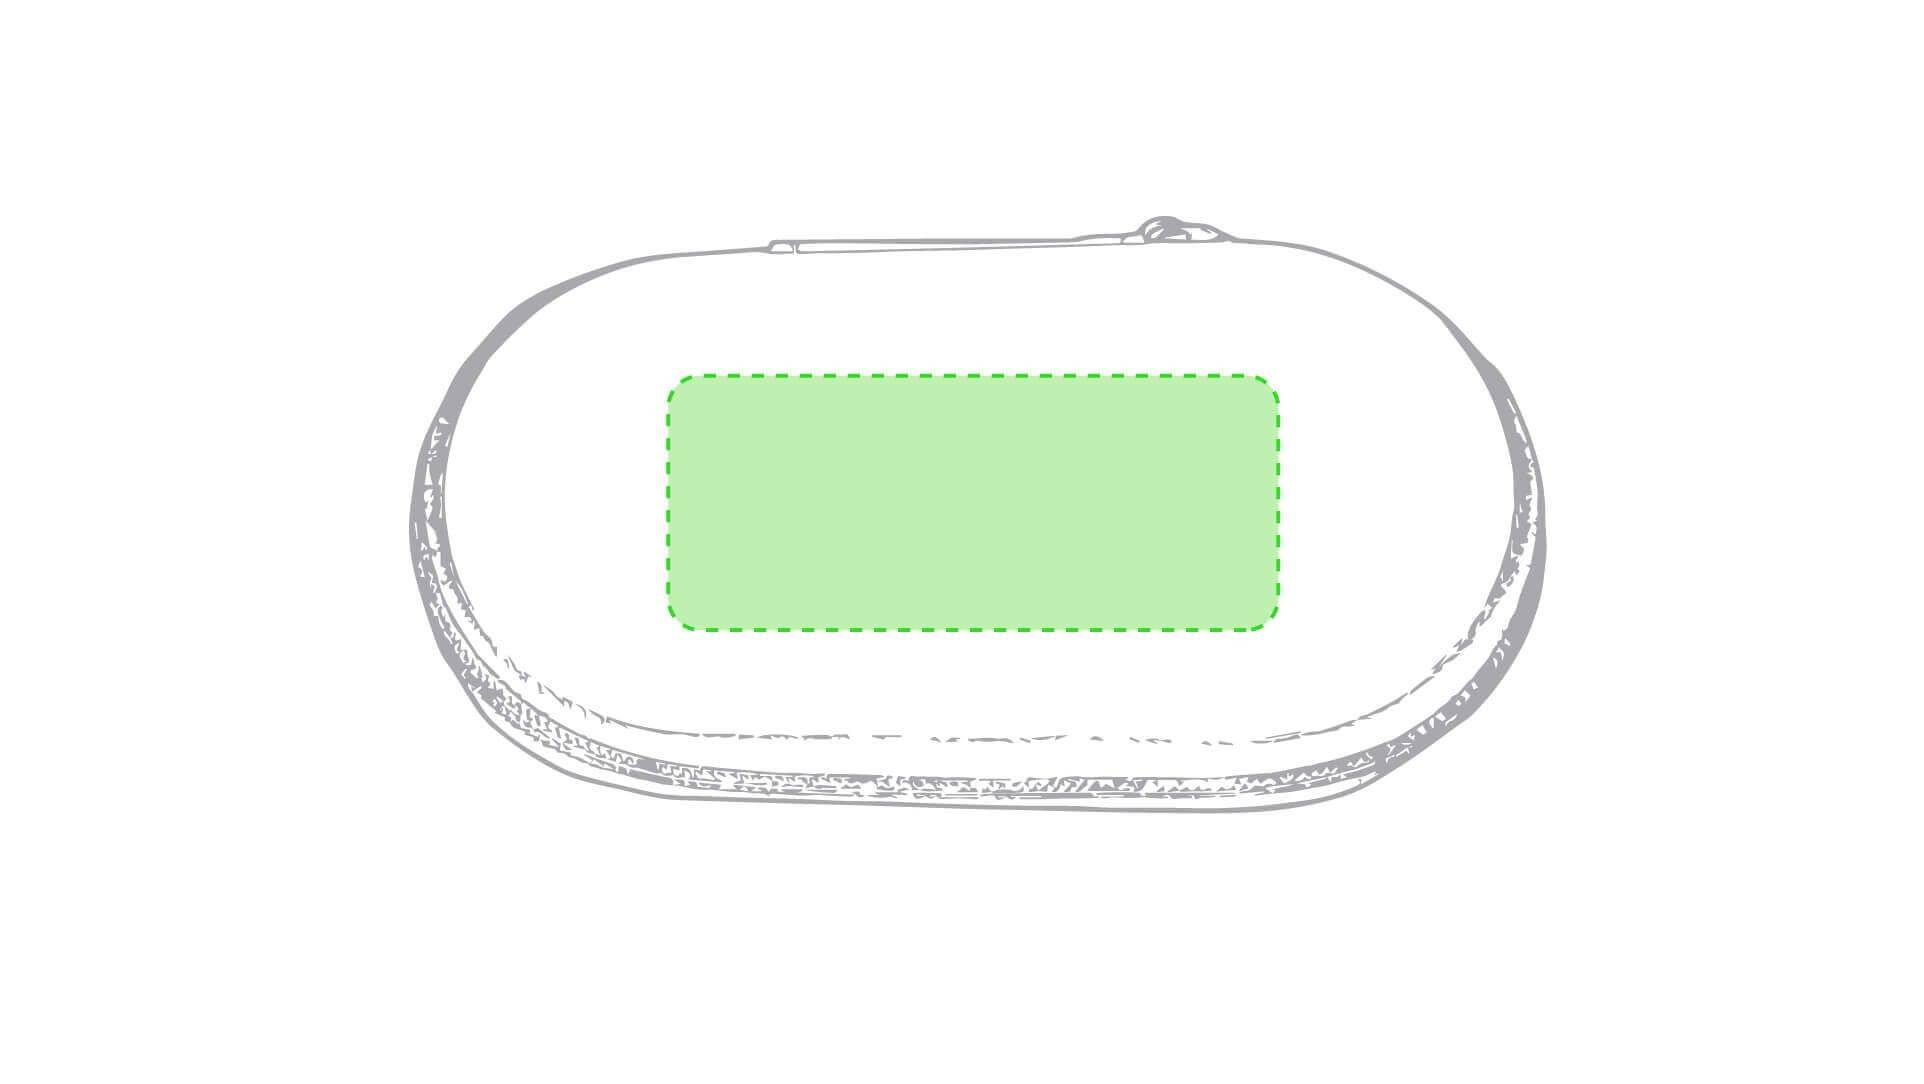 Power bank transparente 2